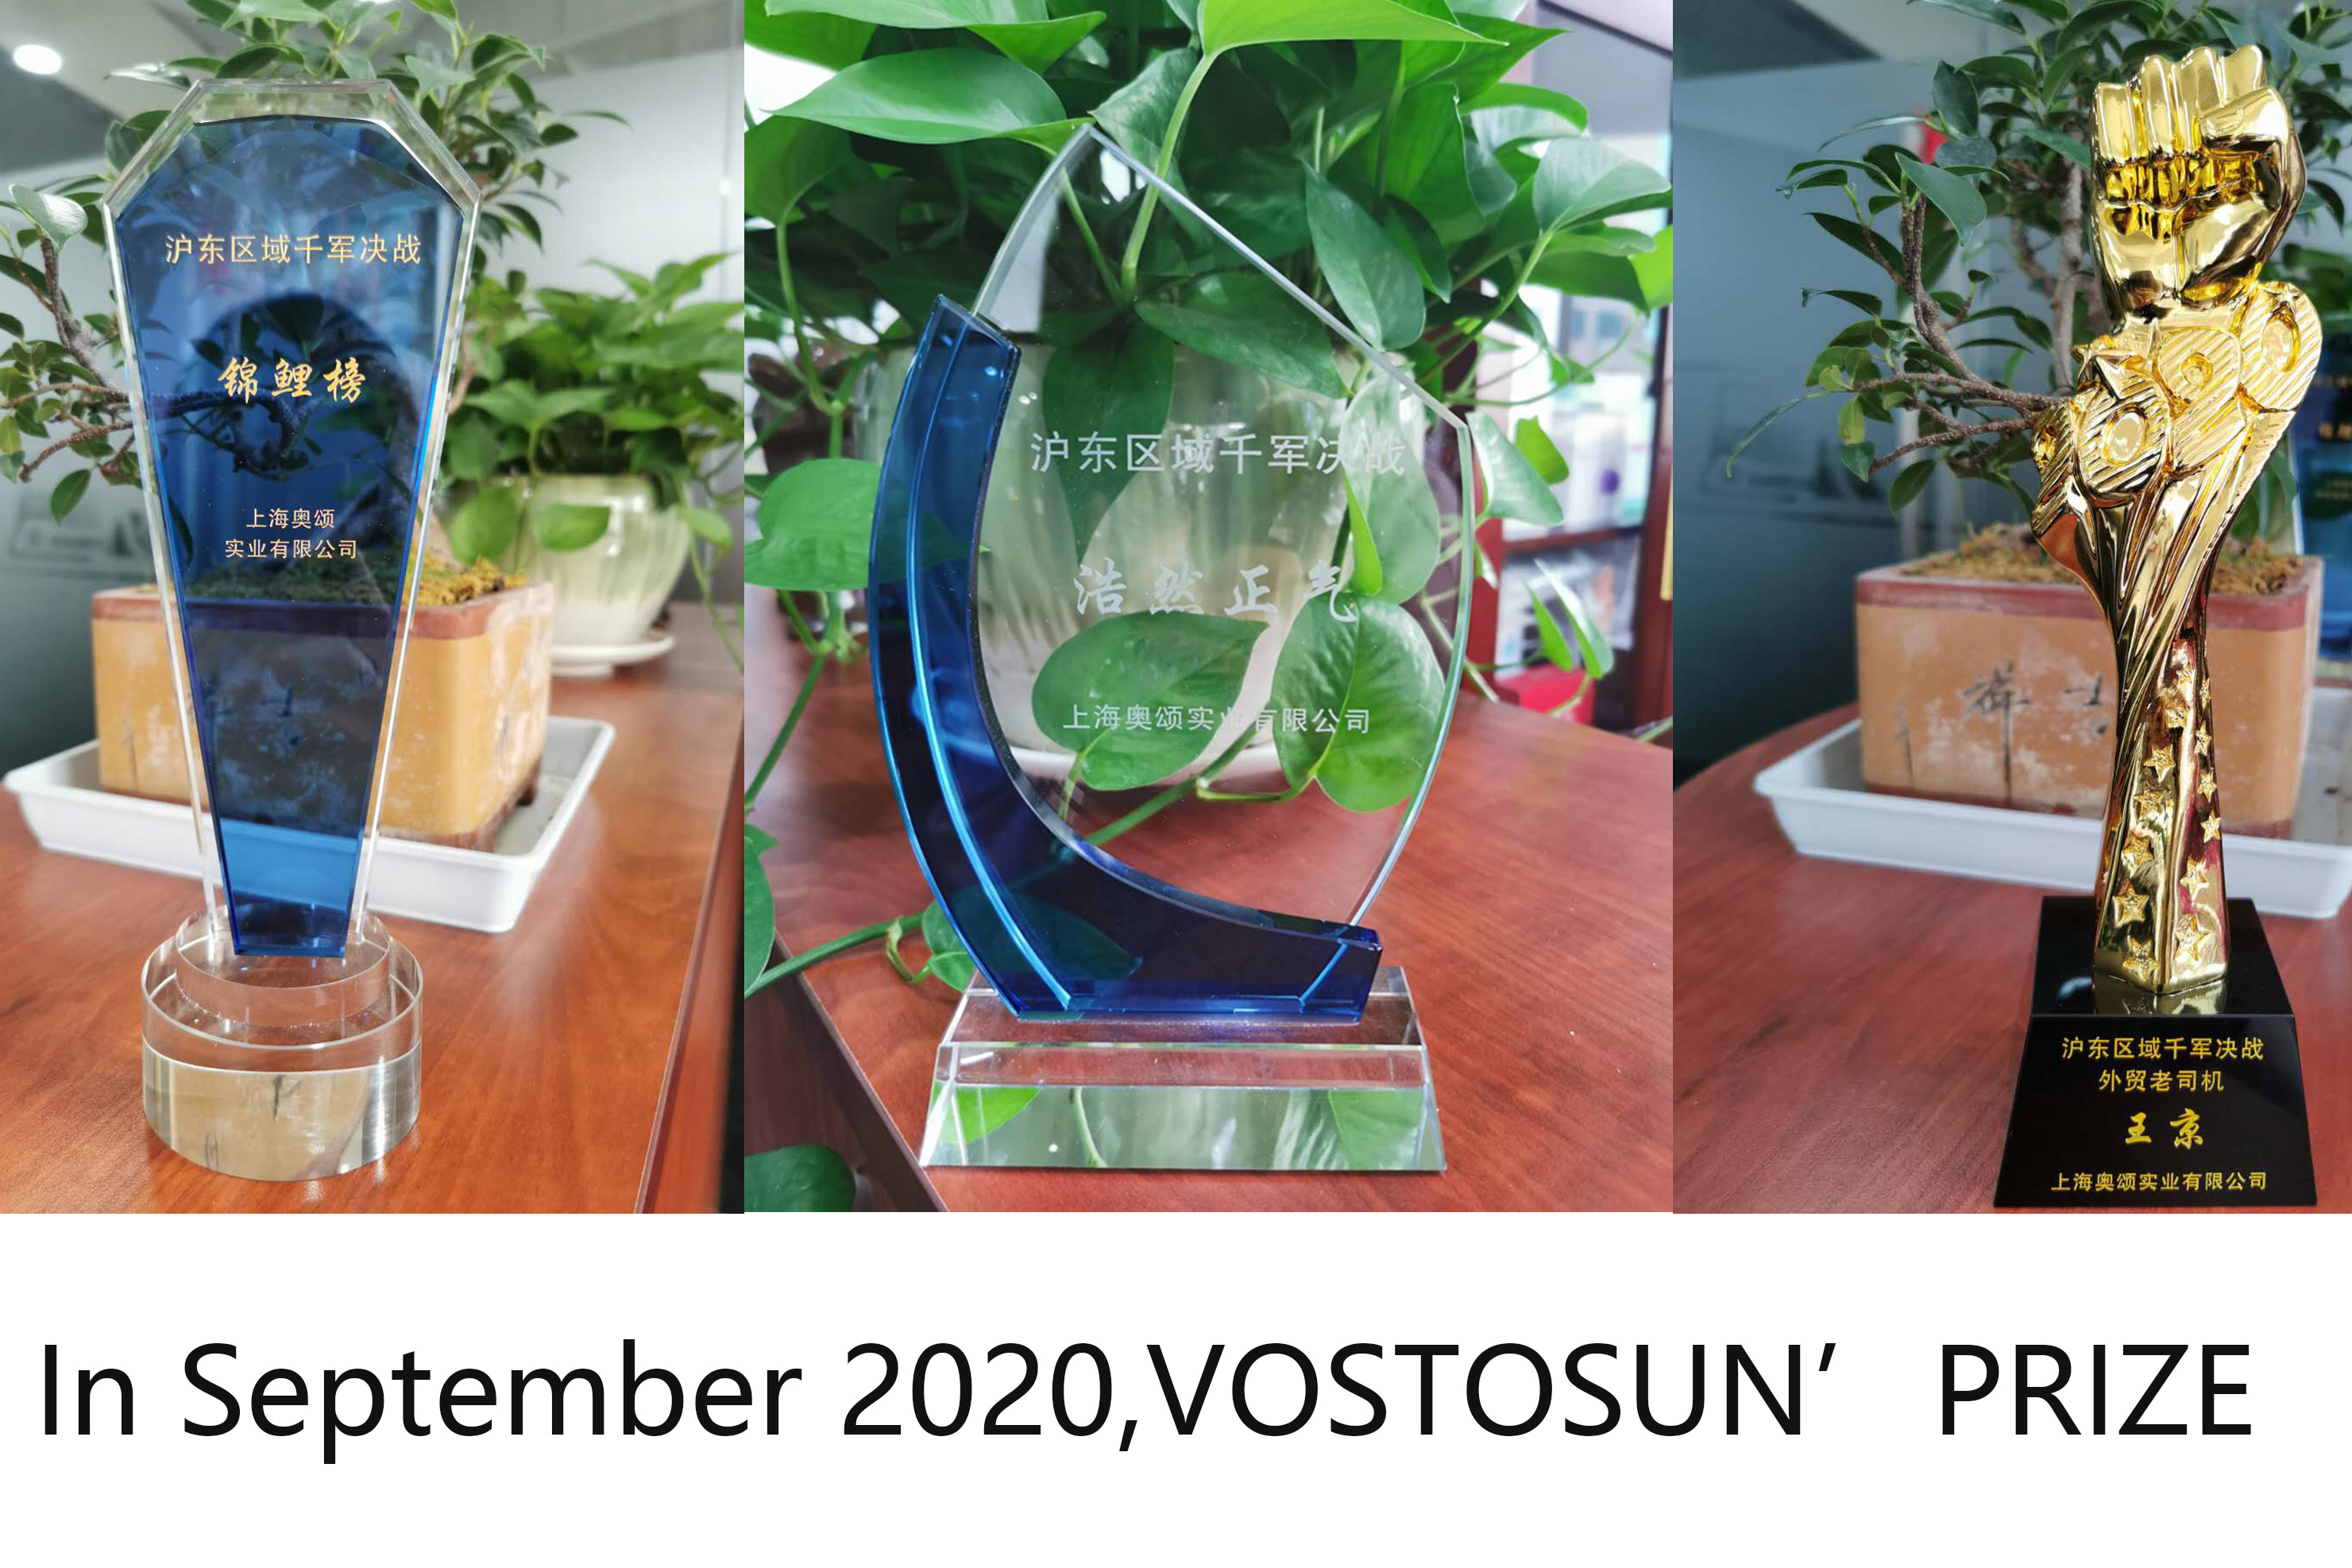 In September 2020, Vostosun achieved good results in the Alibaba Sourcing Festival.